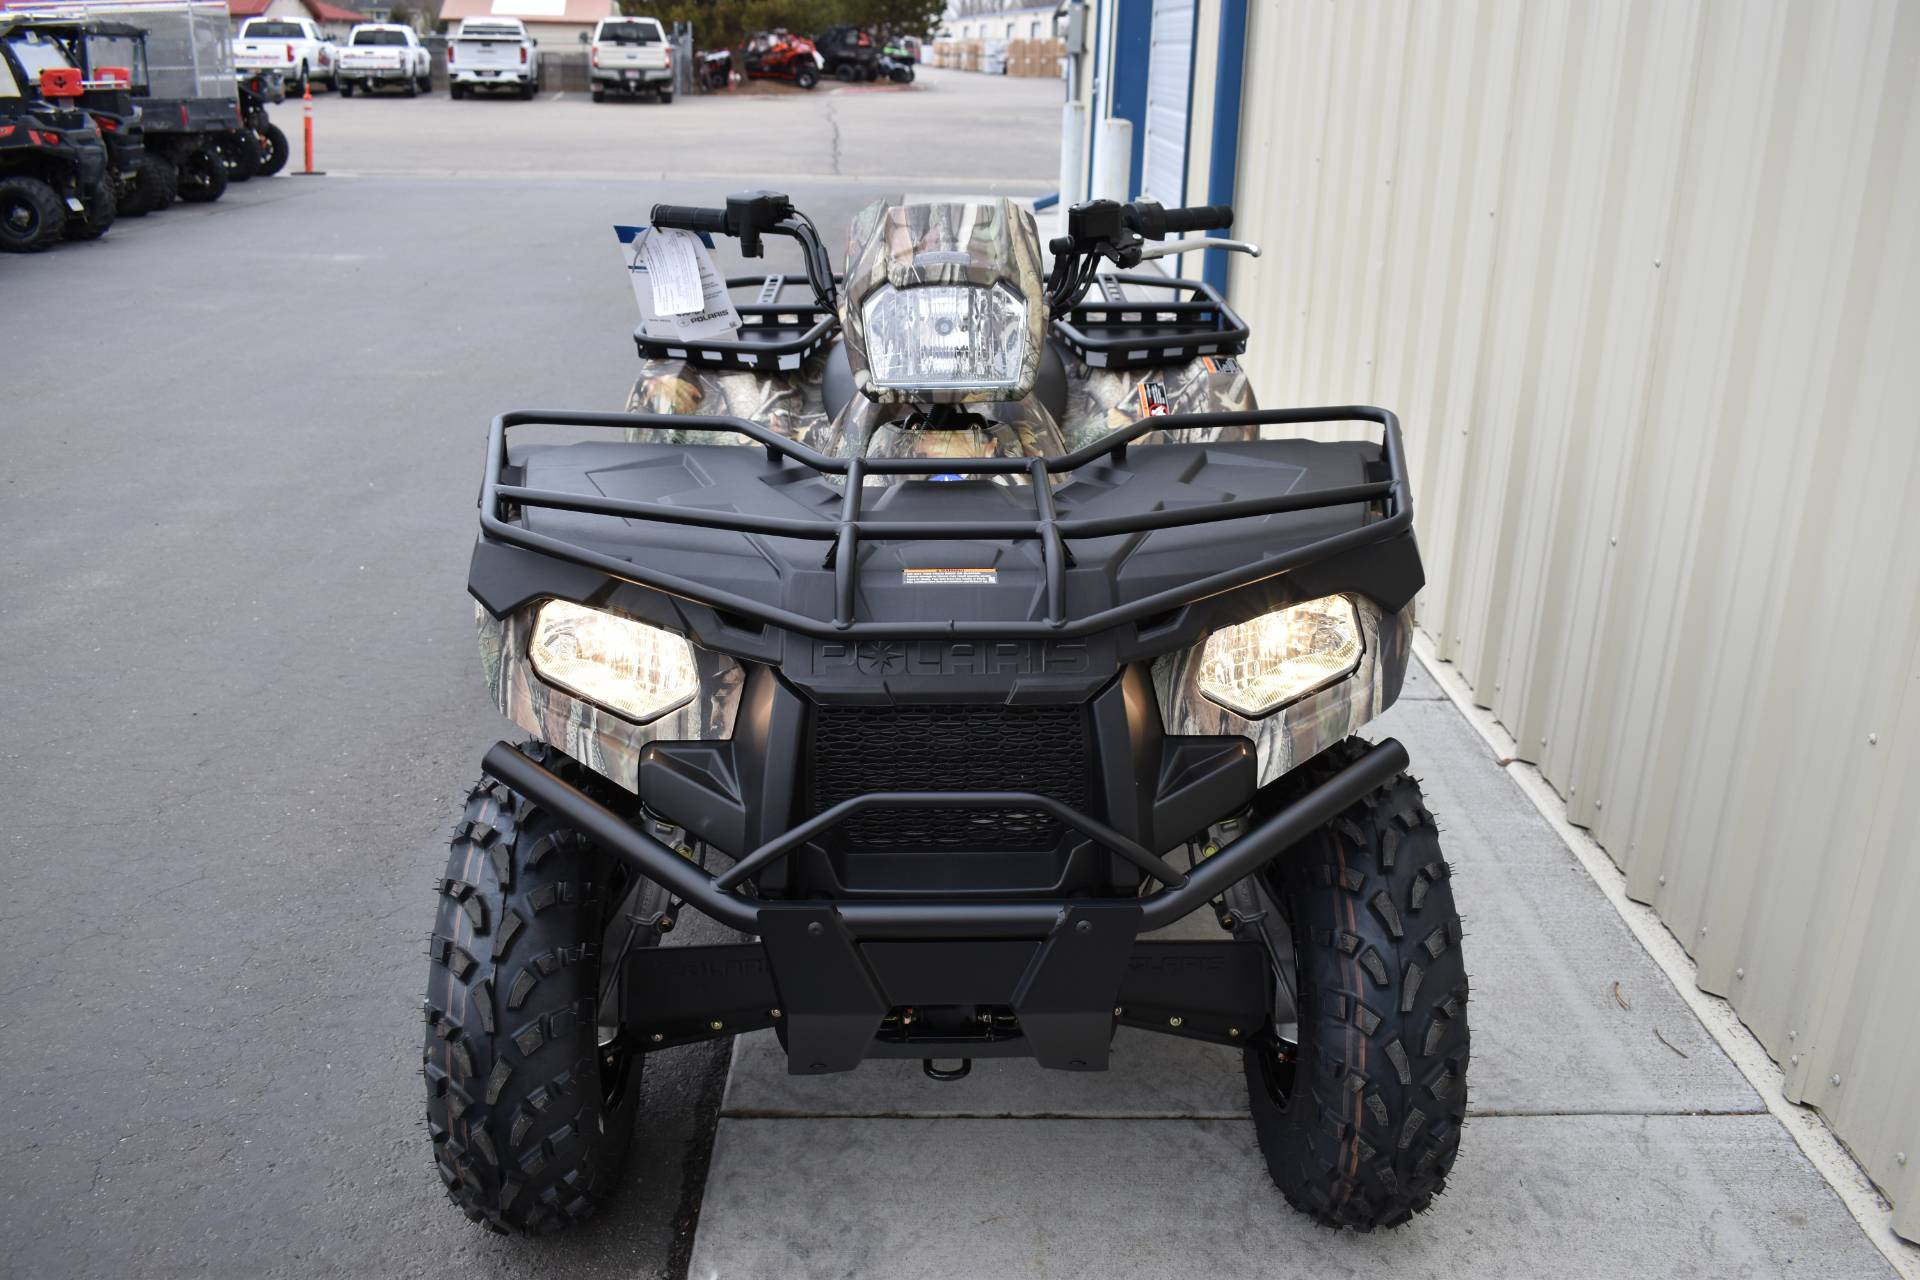 2020 Polaris Sportsman 570 EPS Utility Package in Boise, Idaho - Photo 2